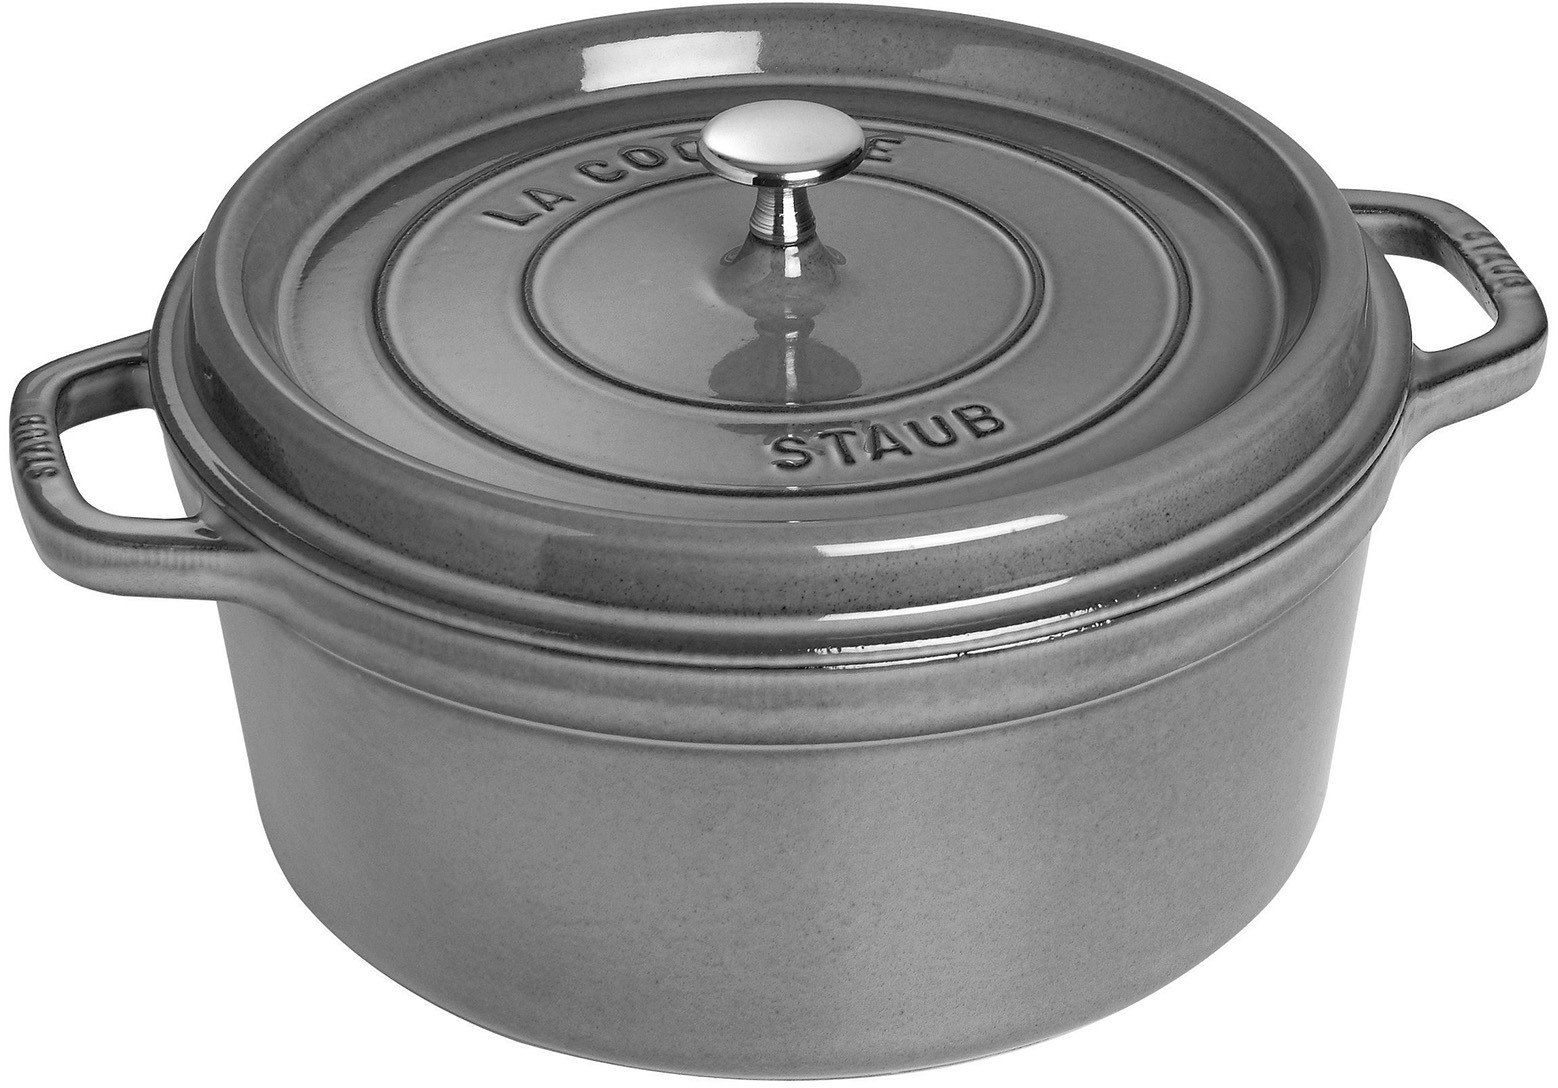 staub 1102818 7 quart cast iron round cocotte with heavyweight lid induction suitable oven. Black Bedroom Furniture Sets. Home Design Ideas